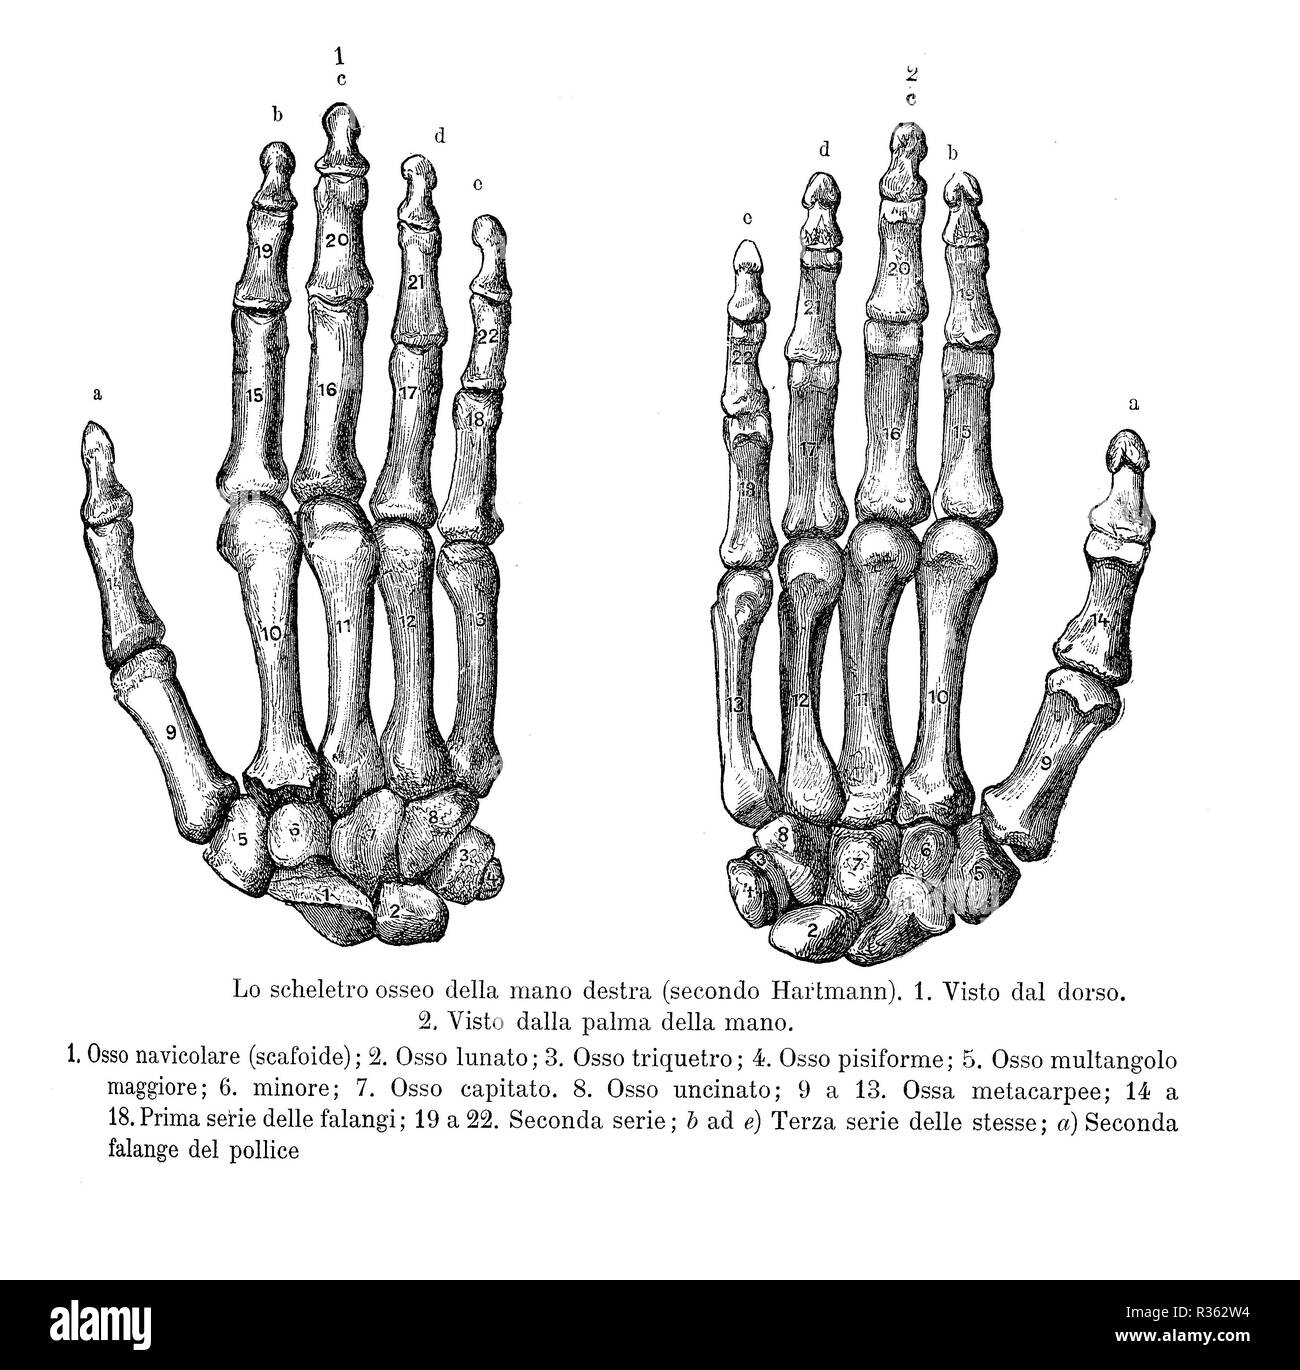 Vintage illustration of anatomy, right hand bones, back and palm view with Italian anatomical descriptions - Stock Image